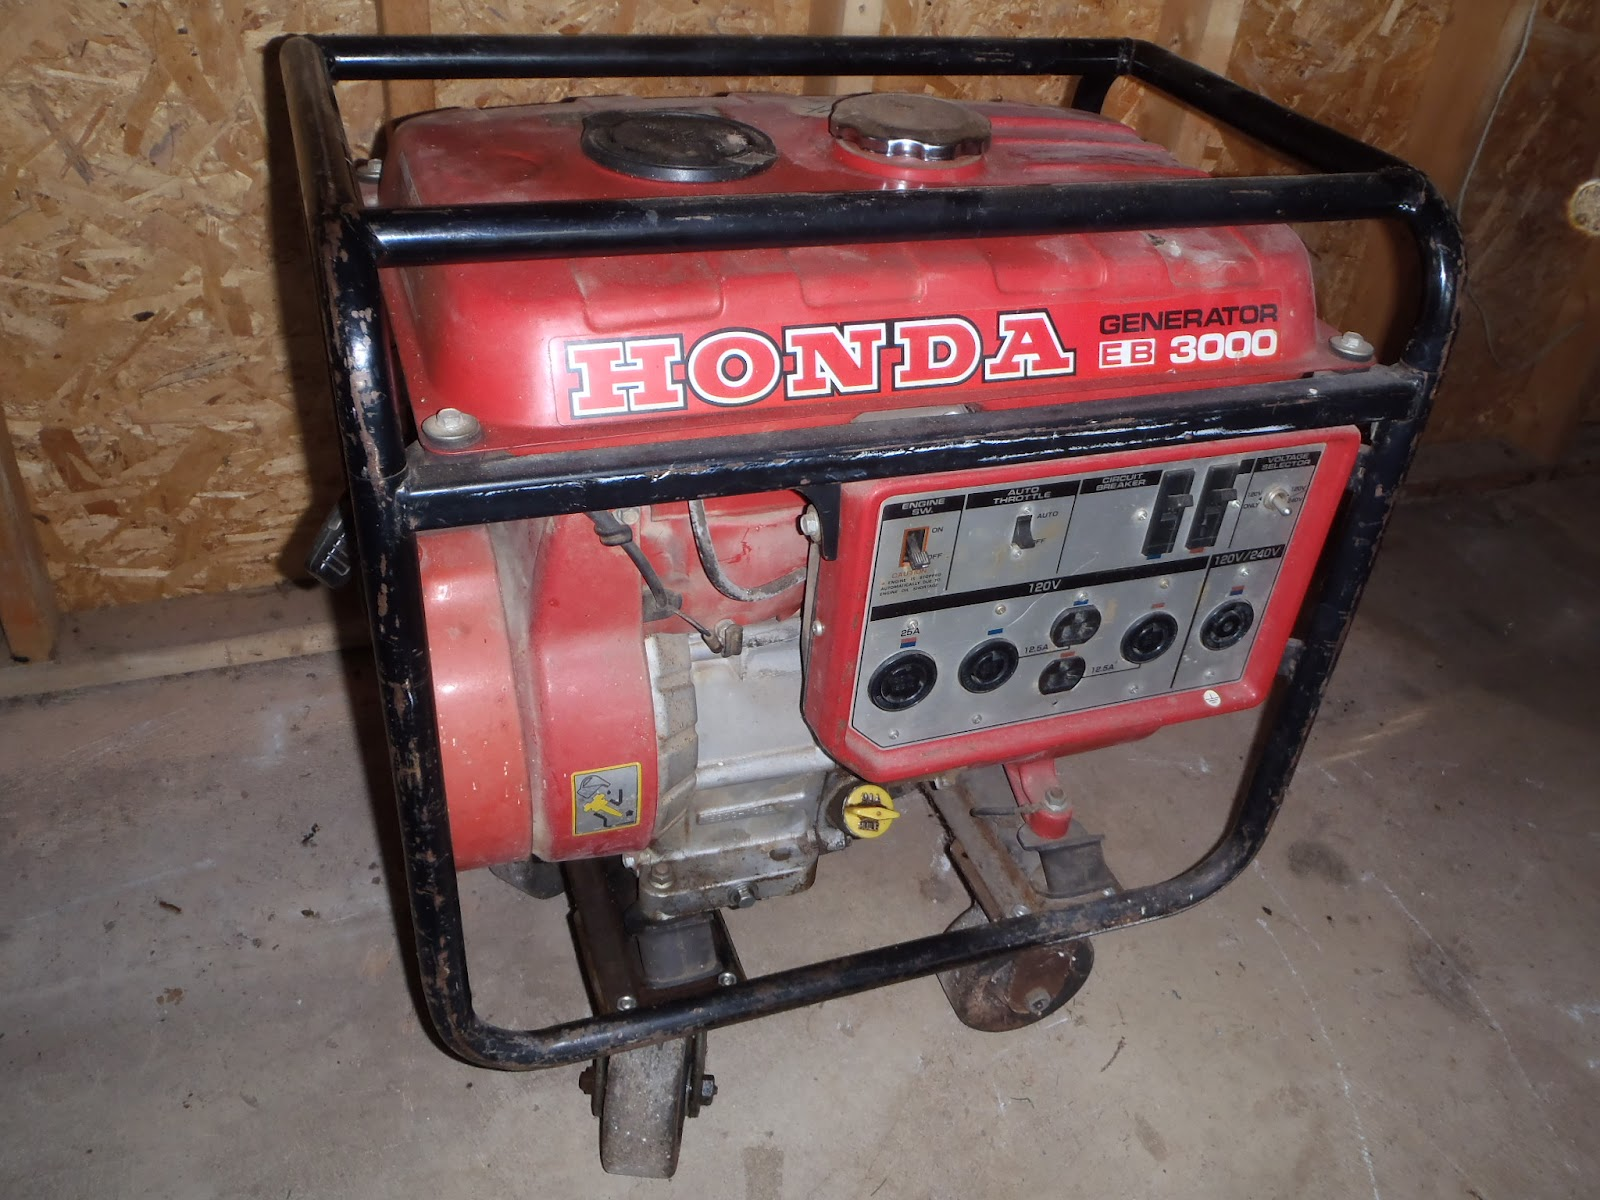 generators for sale free energy honda eb3000c generator for sale used in karachi pakistan price 38000 new generators honda lutian lifan gas